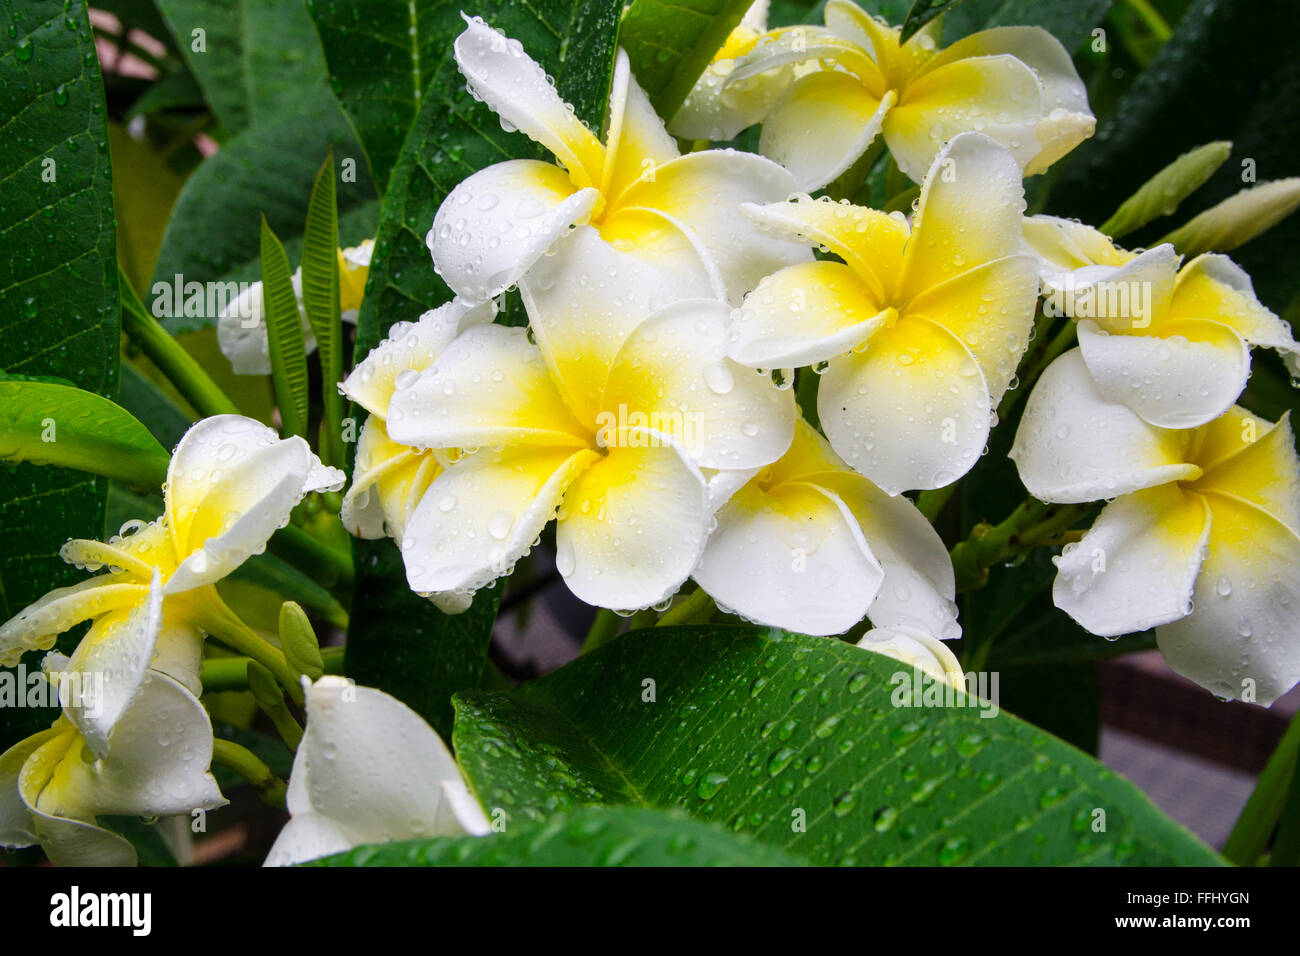 Frangipani or Plumeria flower in drops of water after rain. Traditional flowers Hawaiian Culture, Fiji, Bali, Laos, - Stock Image